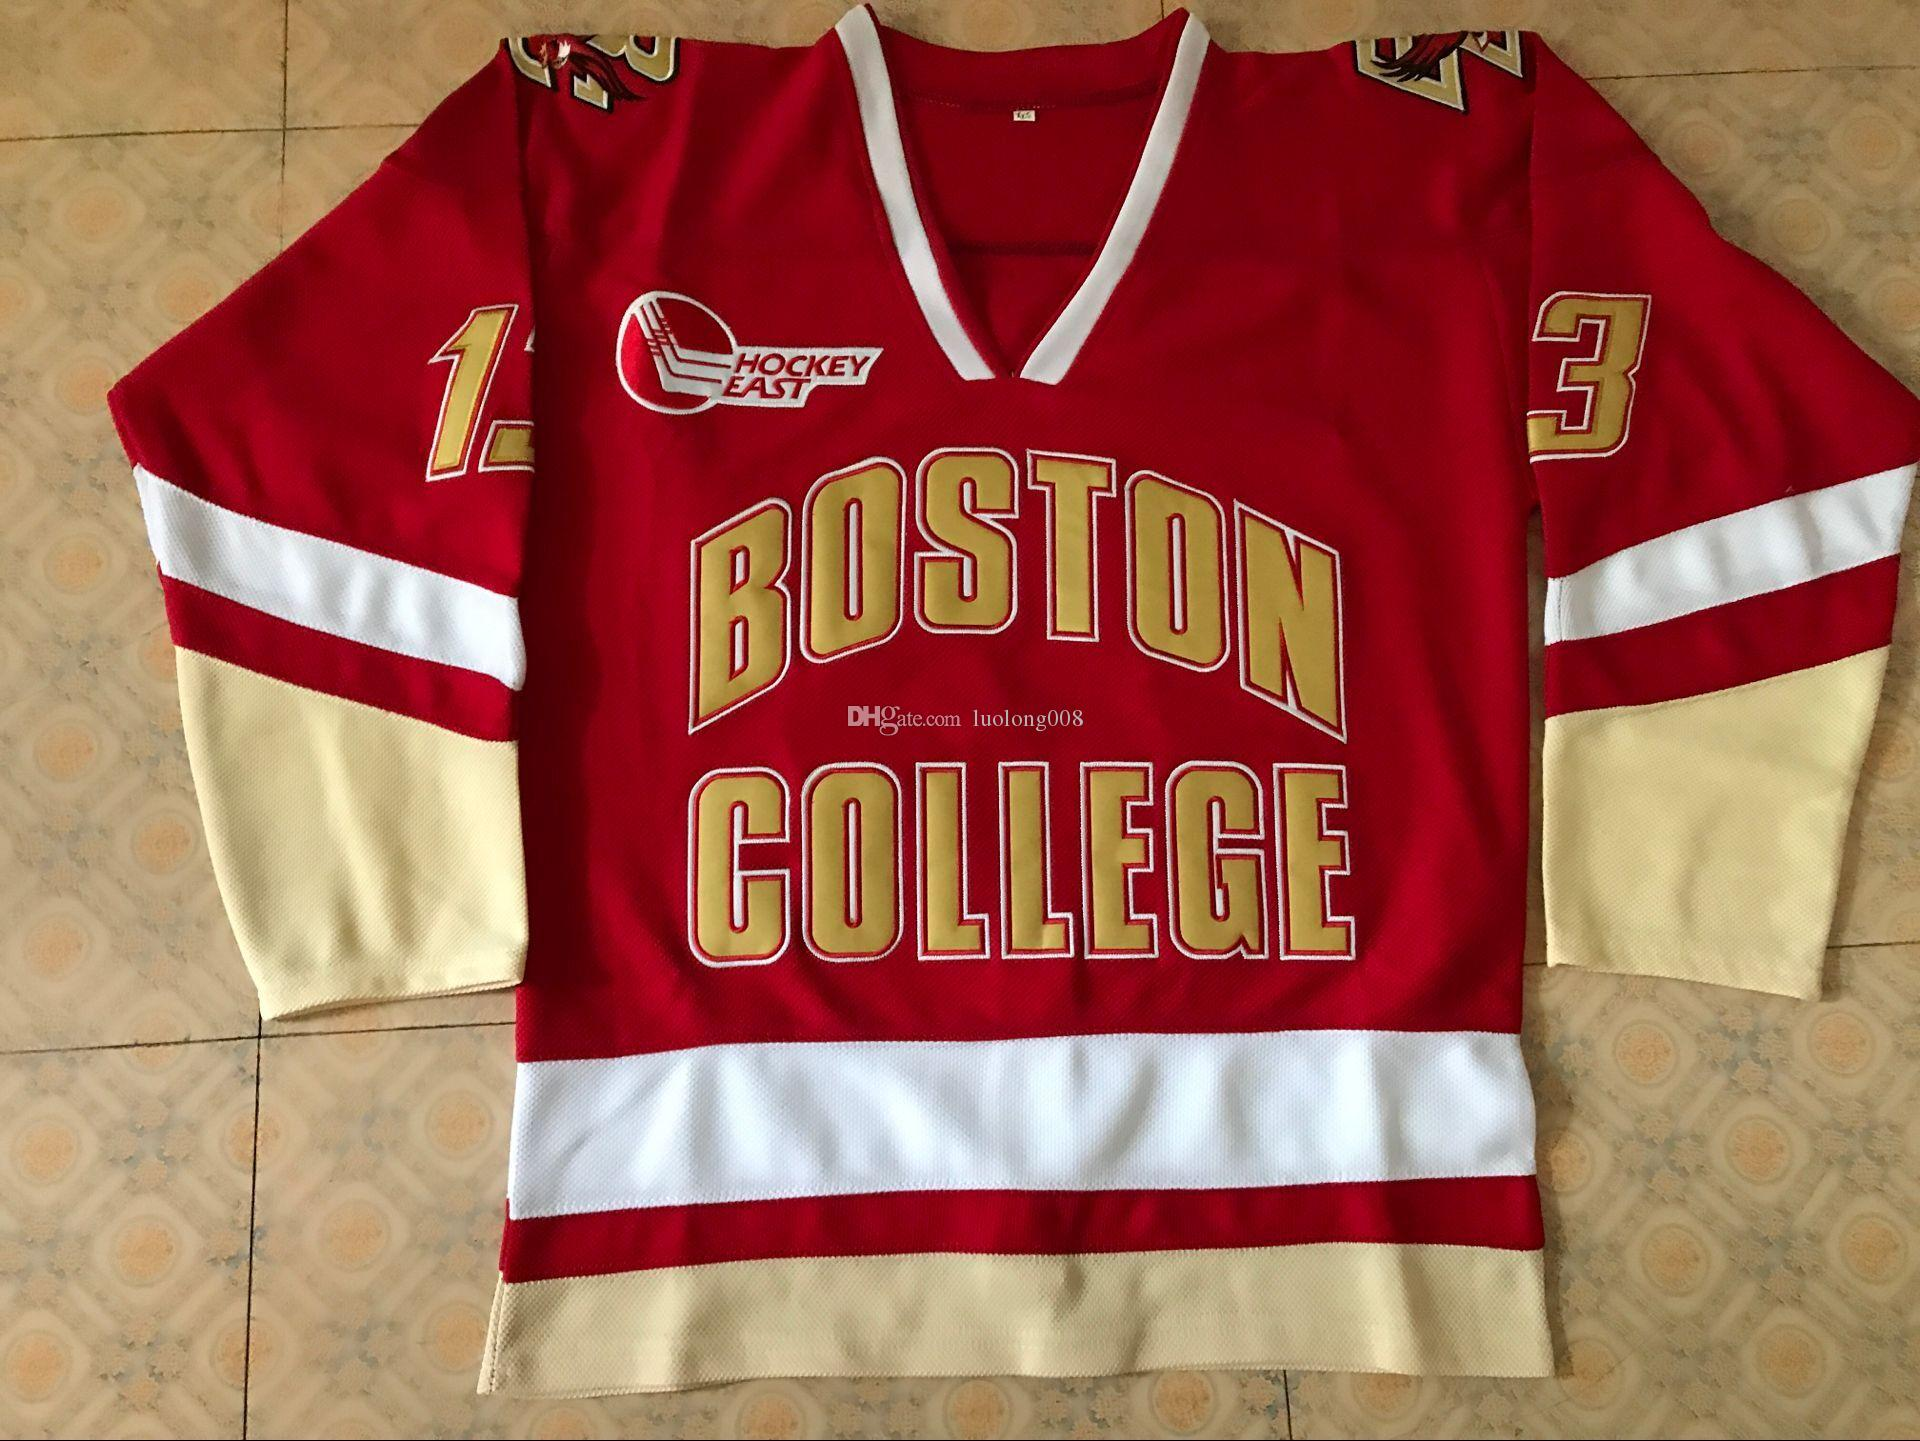 separation shoes bcd1f 3e8a2 Vintage #13 JOHNNY GAUDREAU BOSTON COLLEGE EAGLES Hockey Jersey Embroidery  Stitched Customize any number and name Jerseys